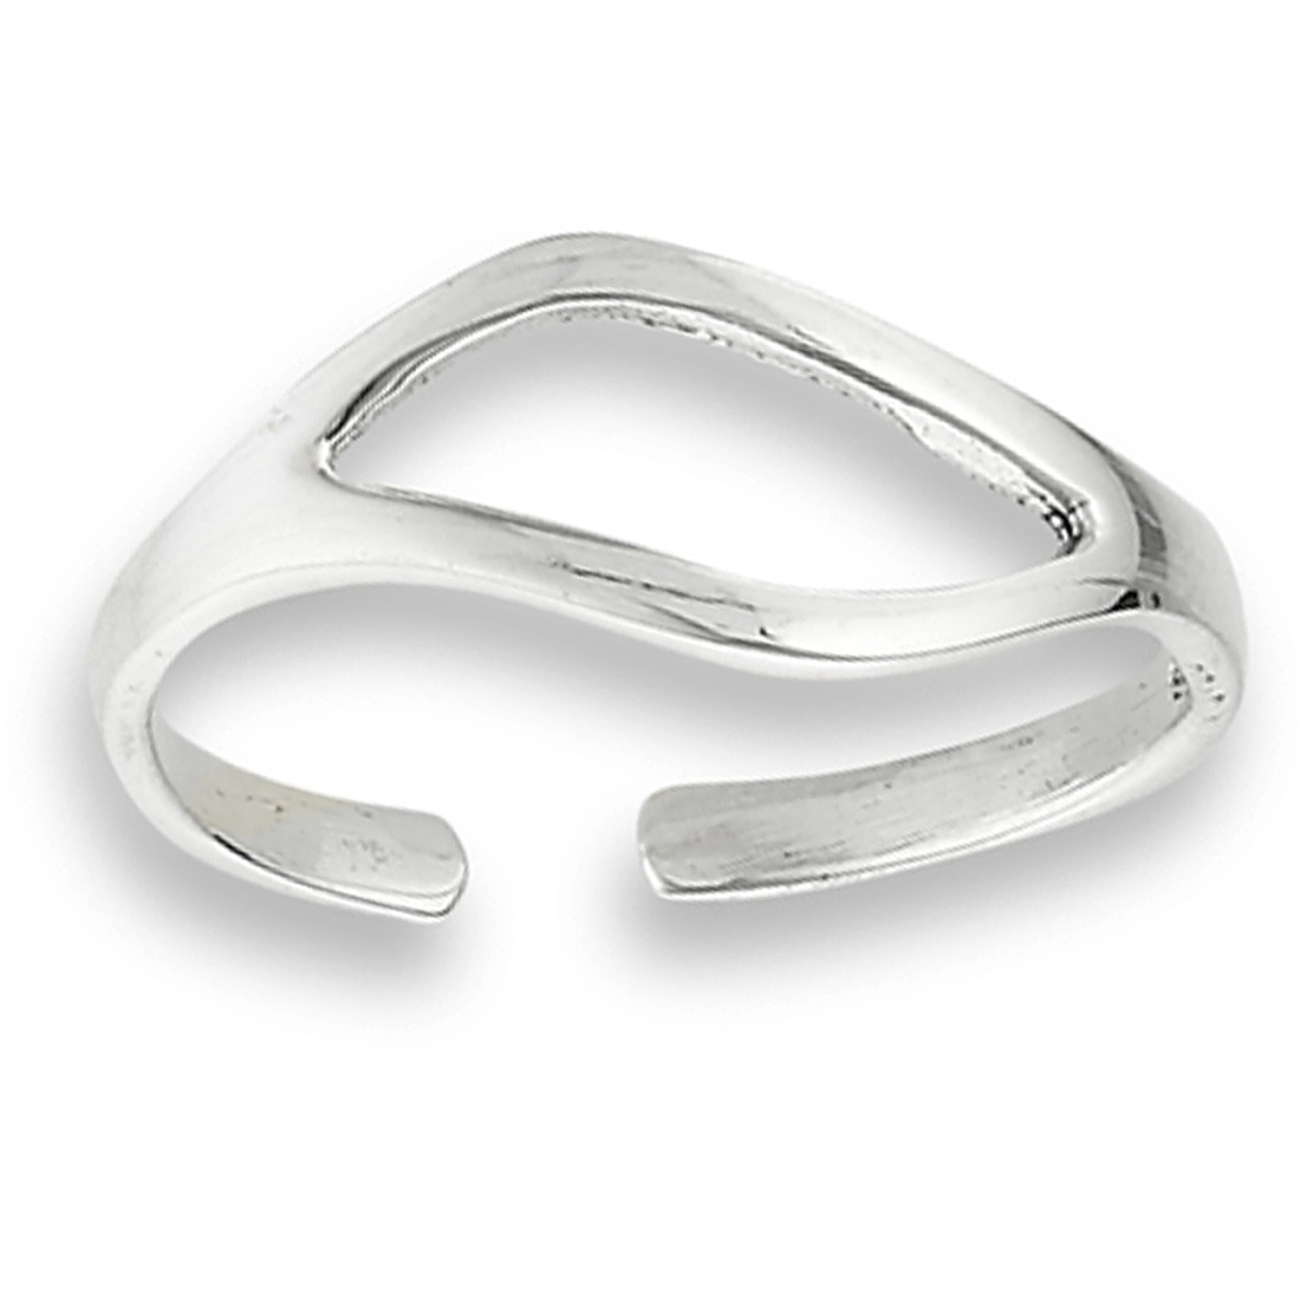 Unique Curved Split Shank Adjustable Toe Ring